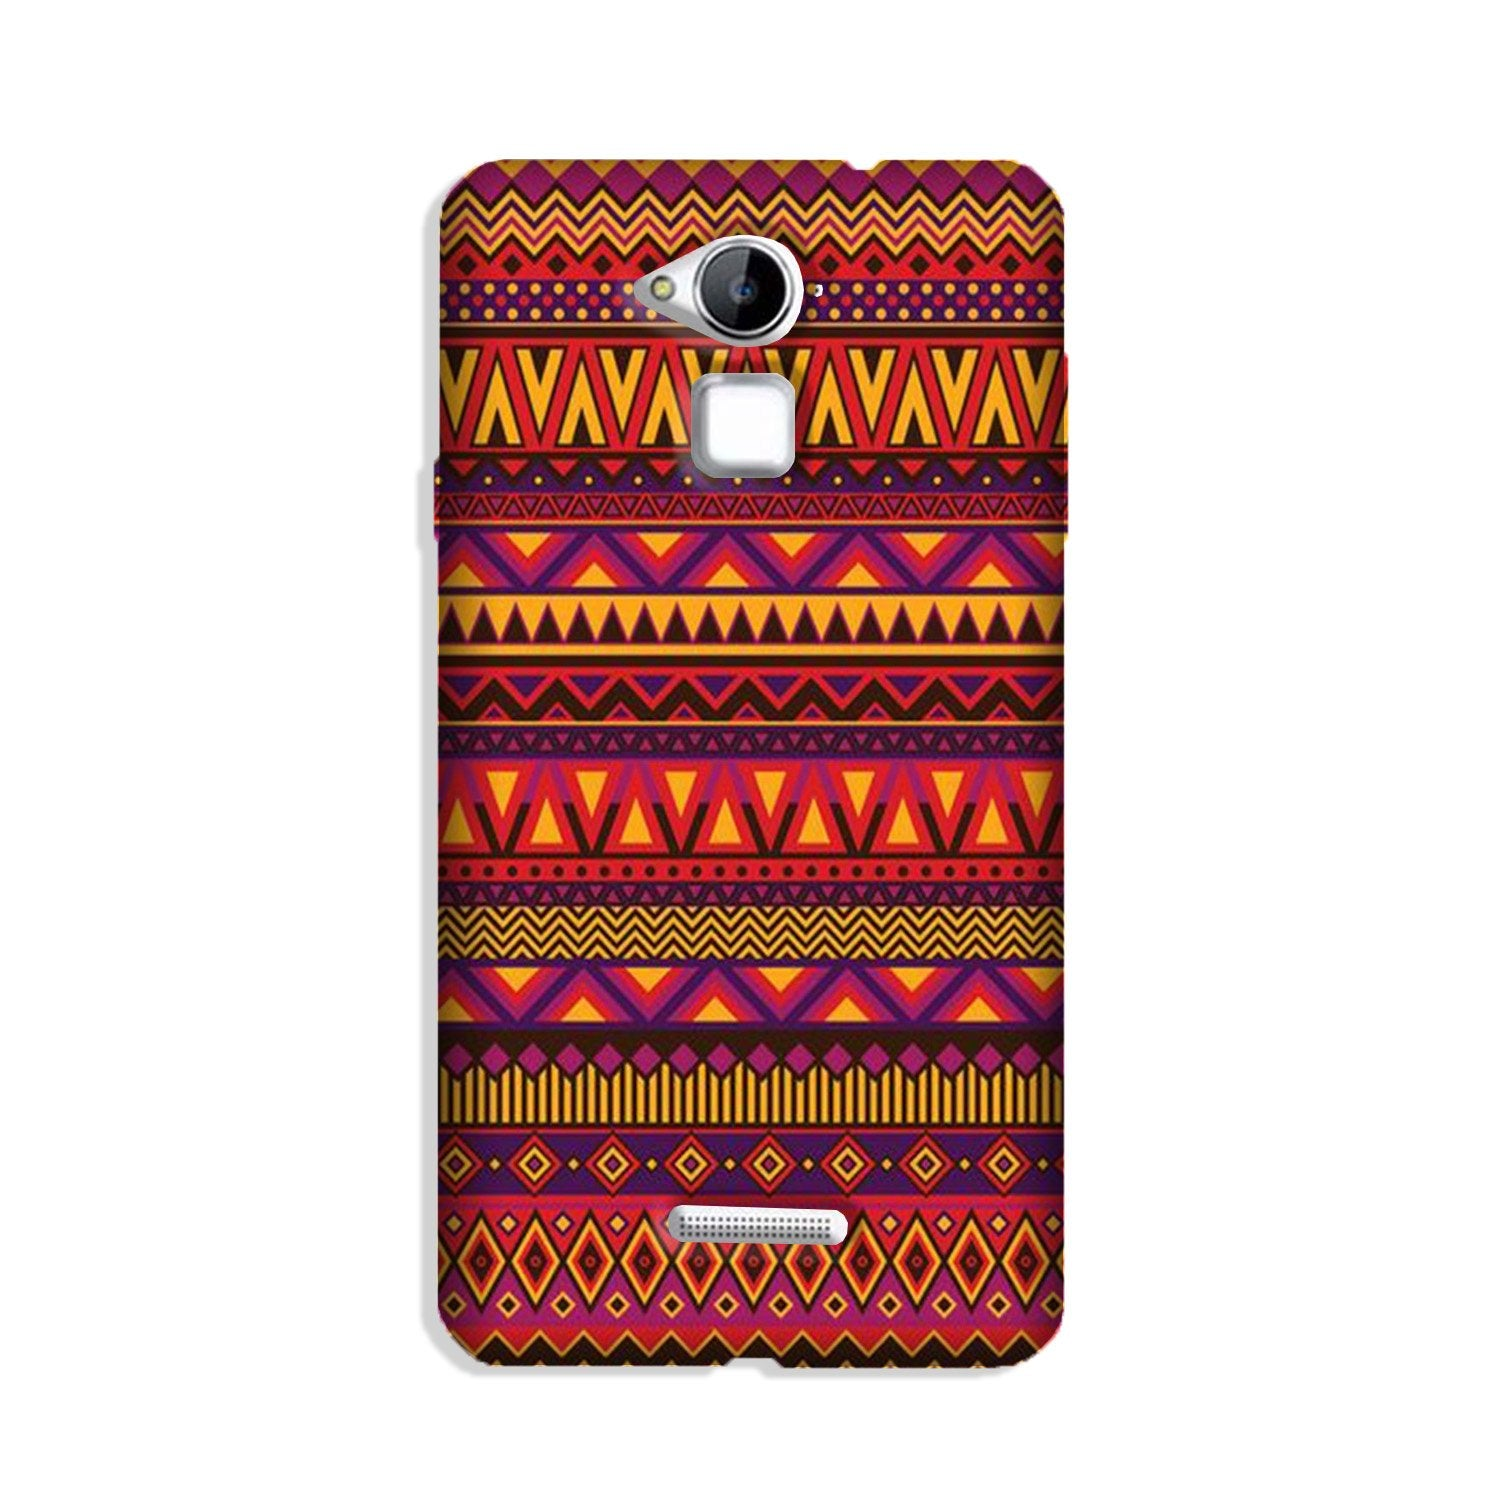 Zigzag line pattern2 Case for Coolpad Note 3